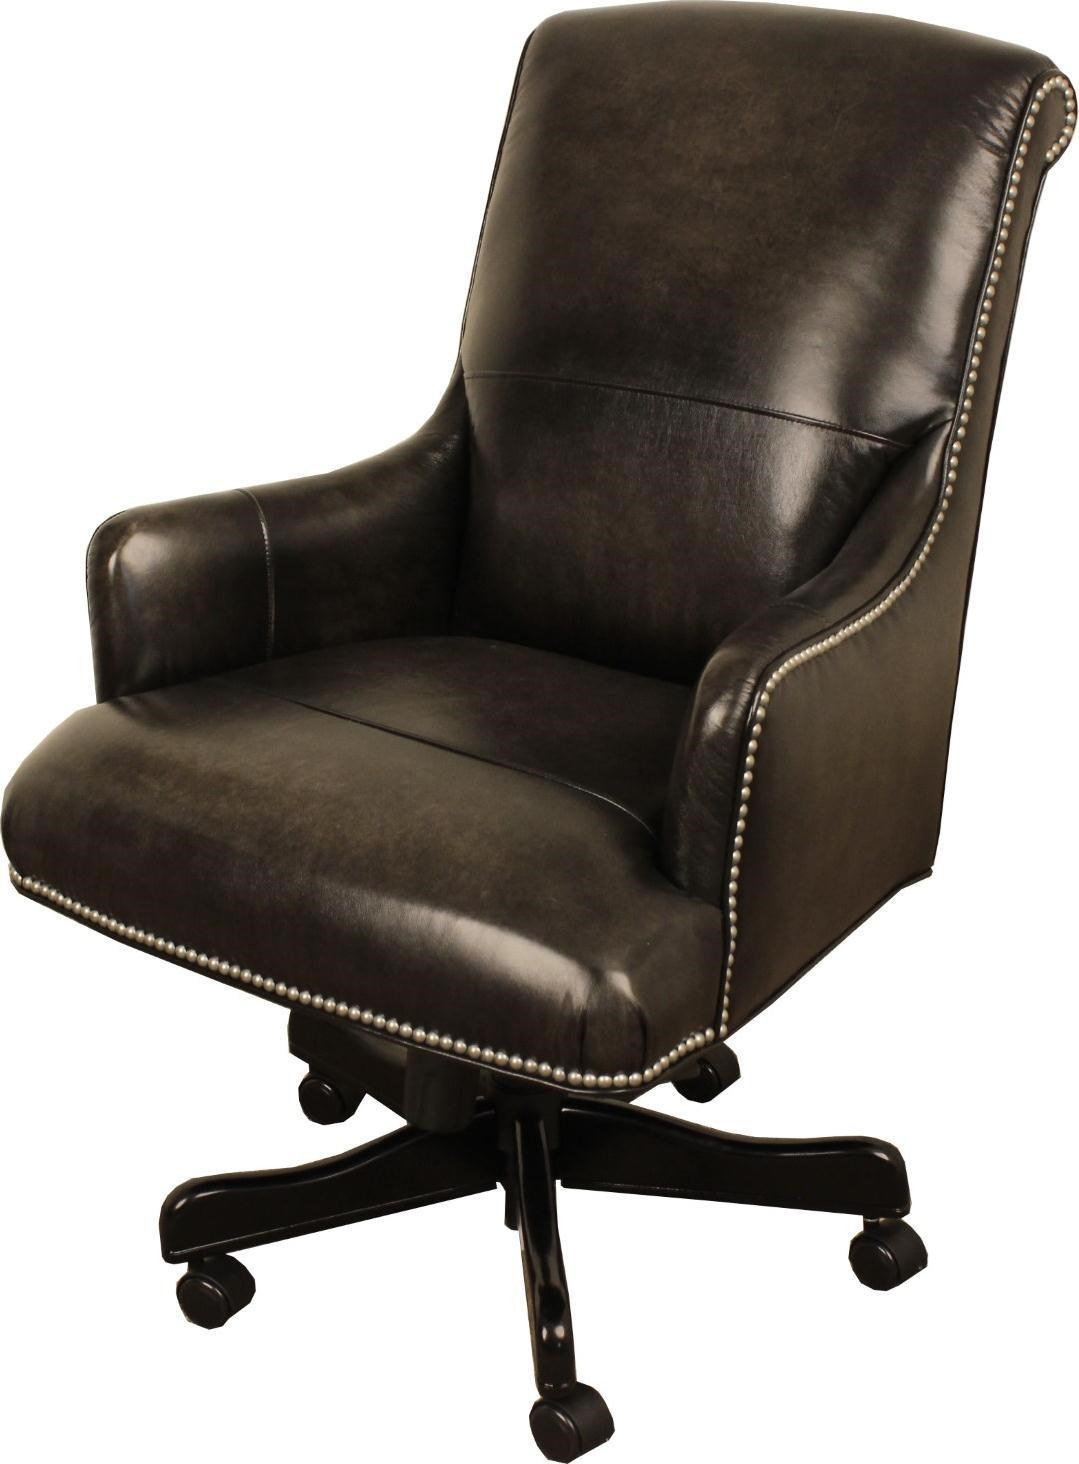 Bellmont Leather Bellmont Leather Desk Chair by Parker House at Morris Home